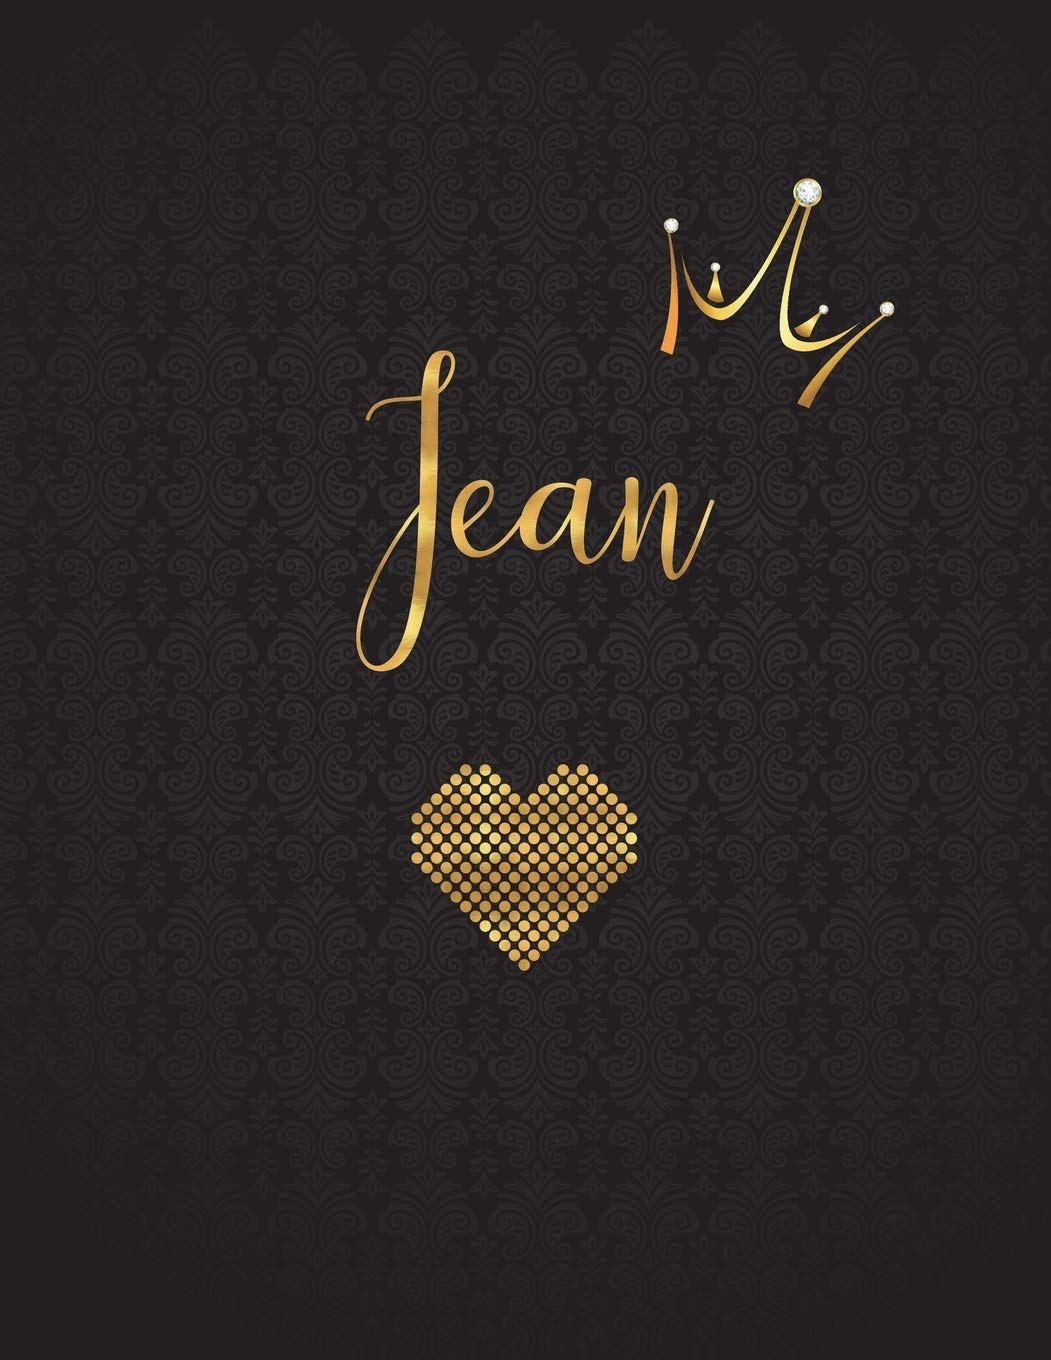 Jean: Personalized Black XL Journal with Gold Lettering, Girl Names/Initials 8.5x11, Journal Notebook with 110 Inspirational Quotes, Journals to Write In for Women (Notebooks and Journals) PDF ePub ebook